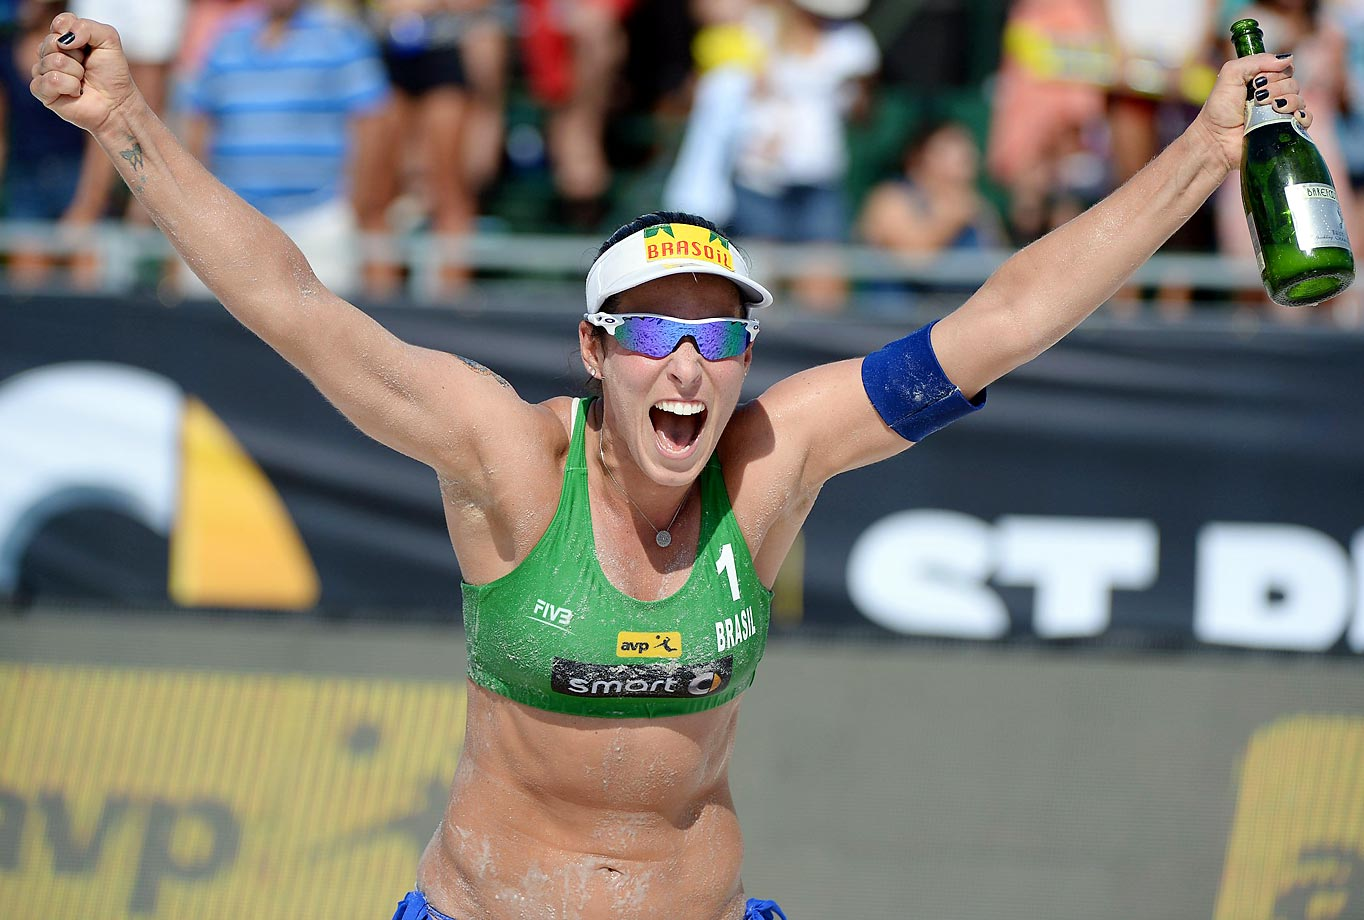 Agatha Bednarczuk of Brazil celebrates the win in the final.